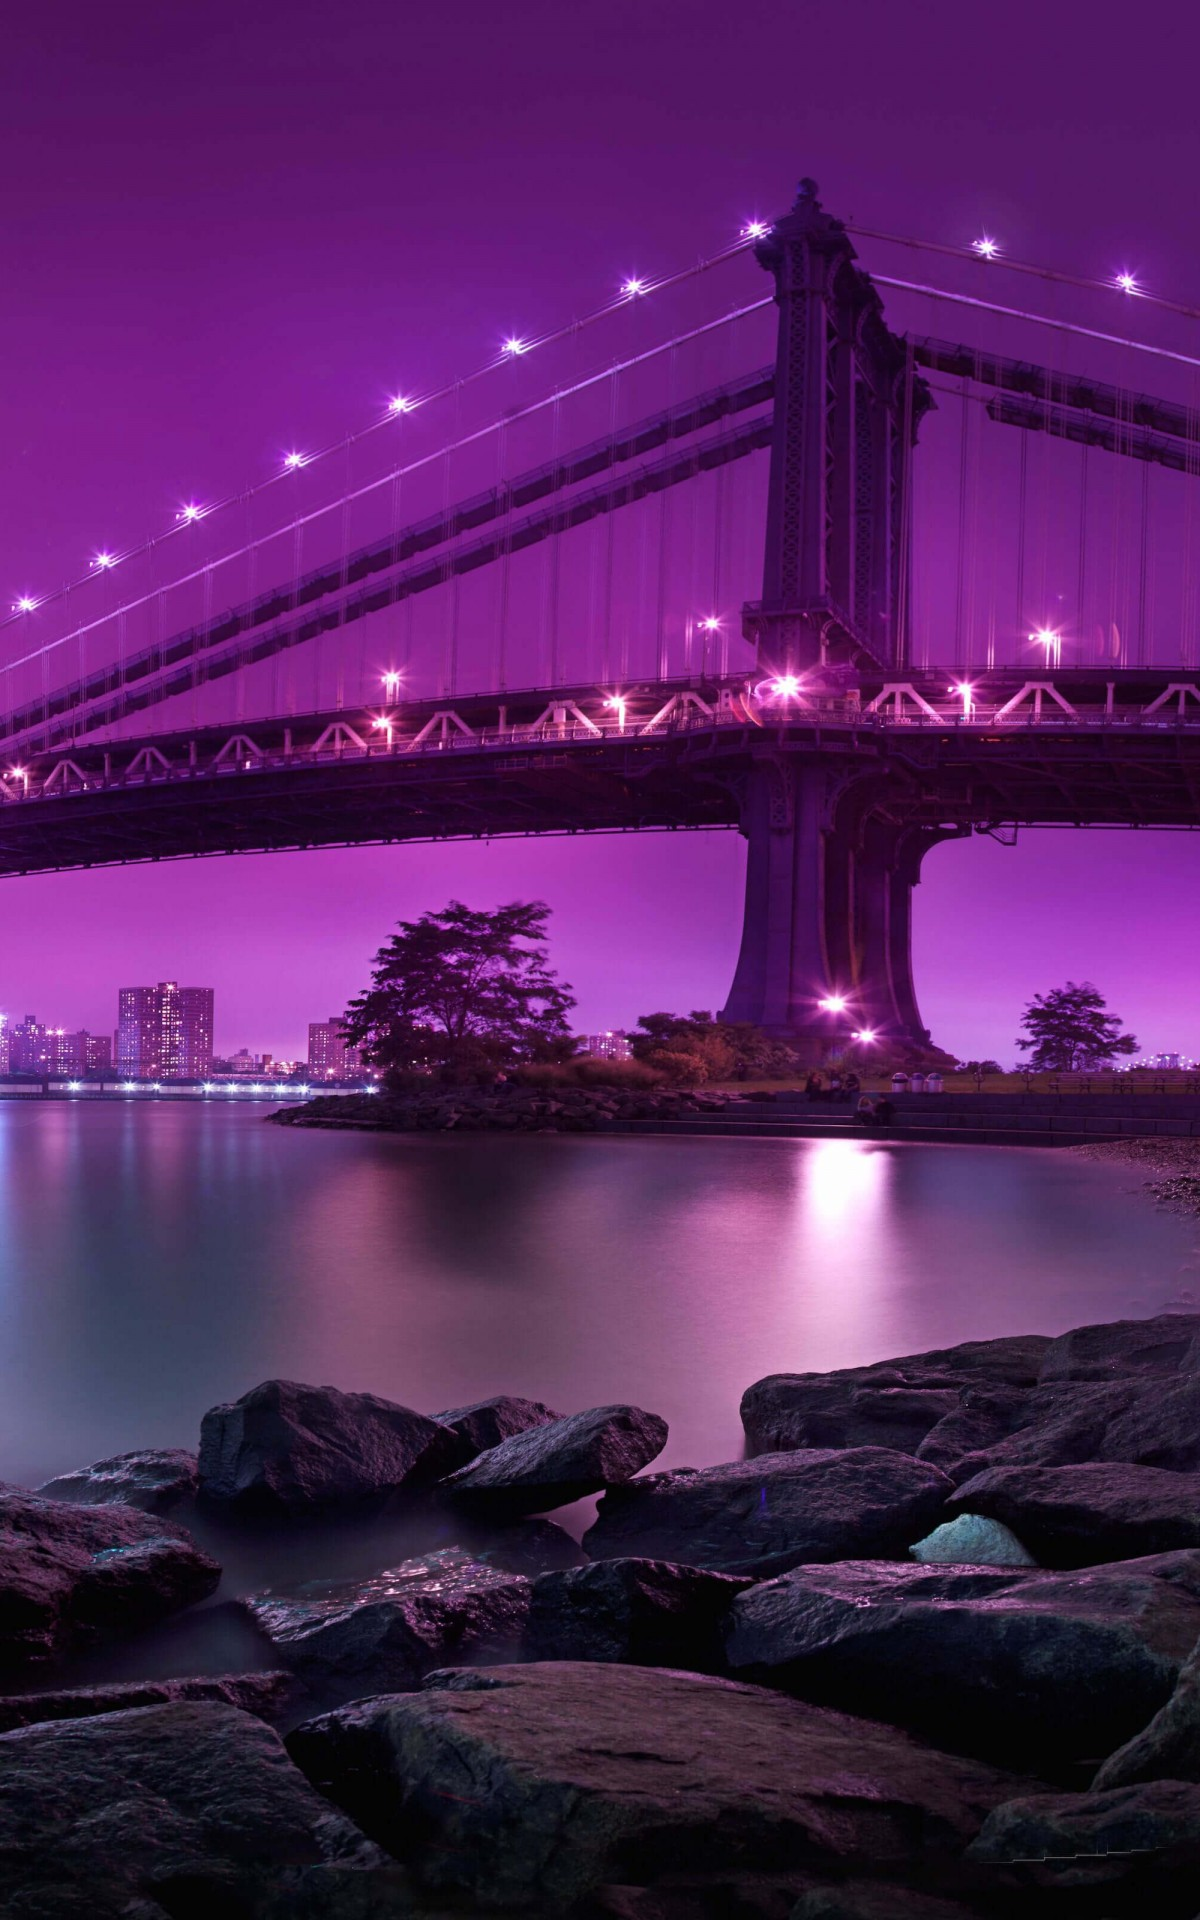 Bridge by night HD wallpaper for Kindle Fire HDX   HDwallpapersnet 1200x1920